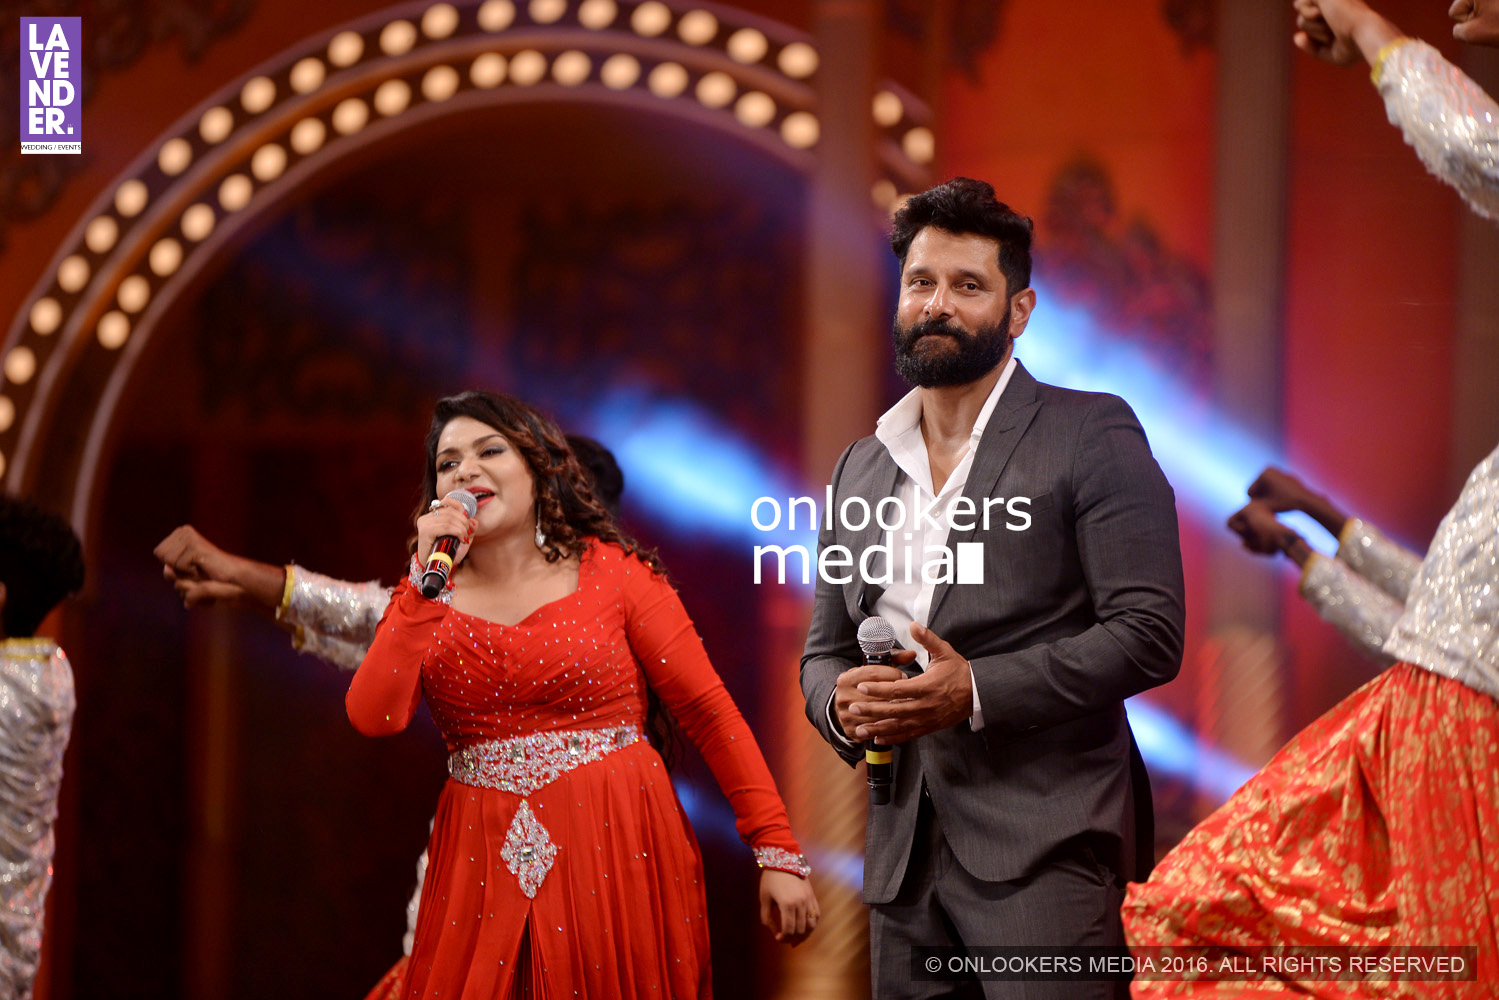 http://onlookersmedia.in/wp-content/uploads/2016/02/Vikram-at-Asianet-Film-Awards-2016-62.jpg